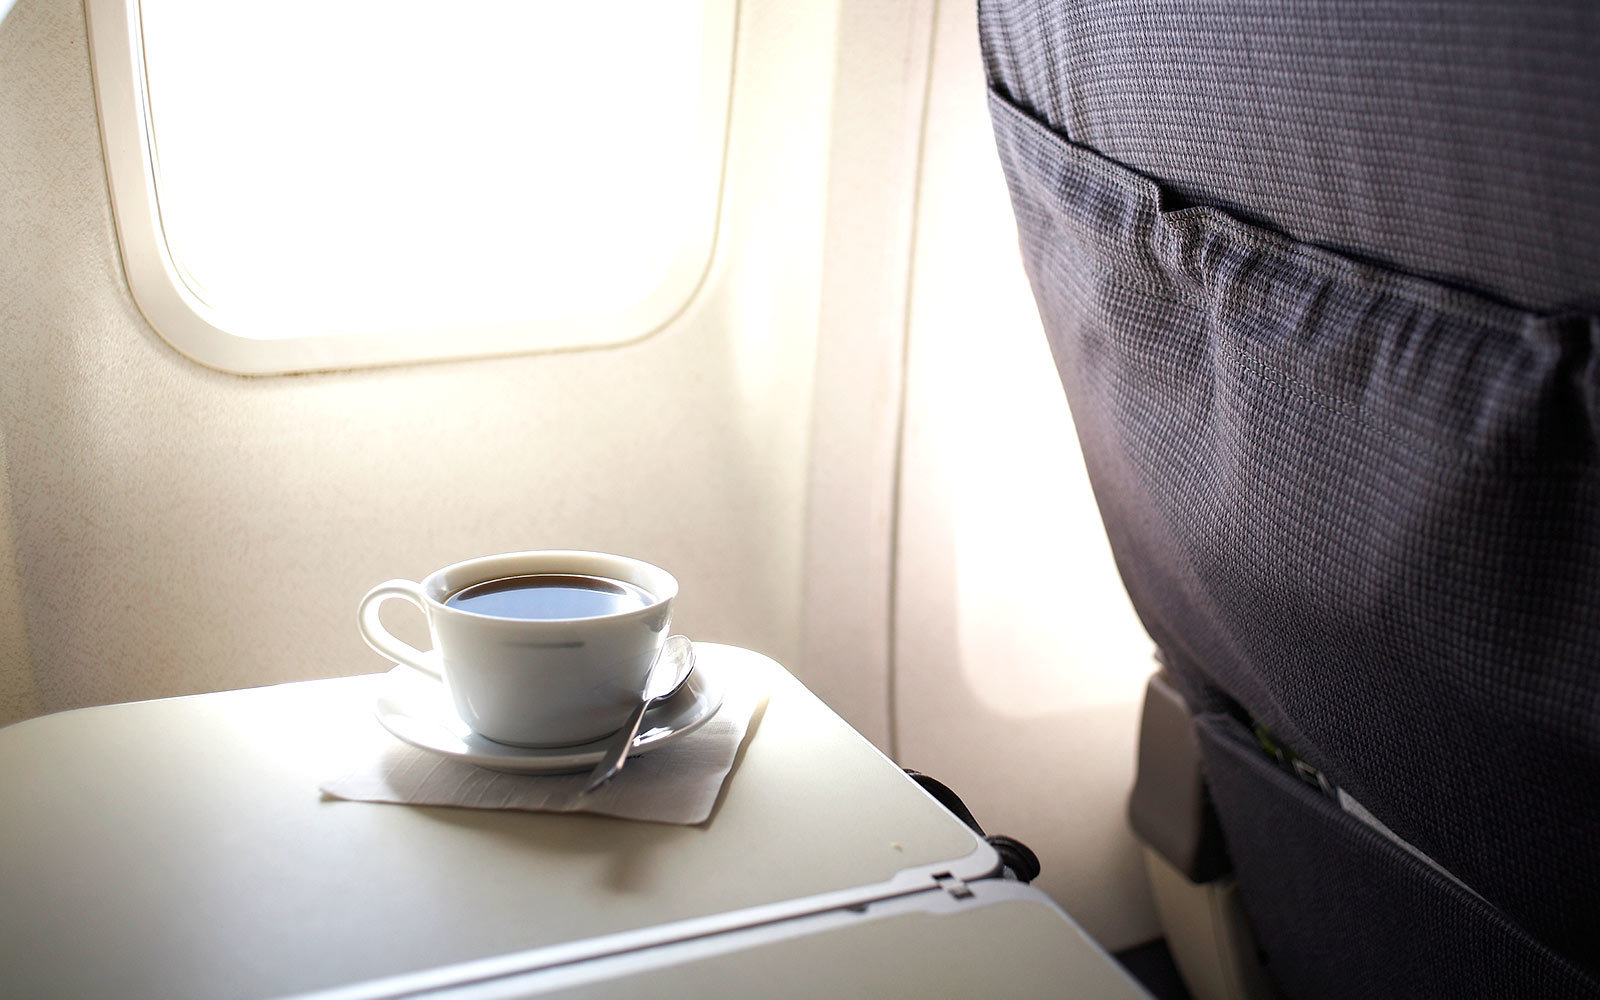 Teen sues Virgin Australia after sensitive areas burned by coffee